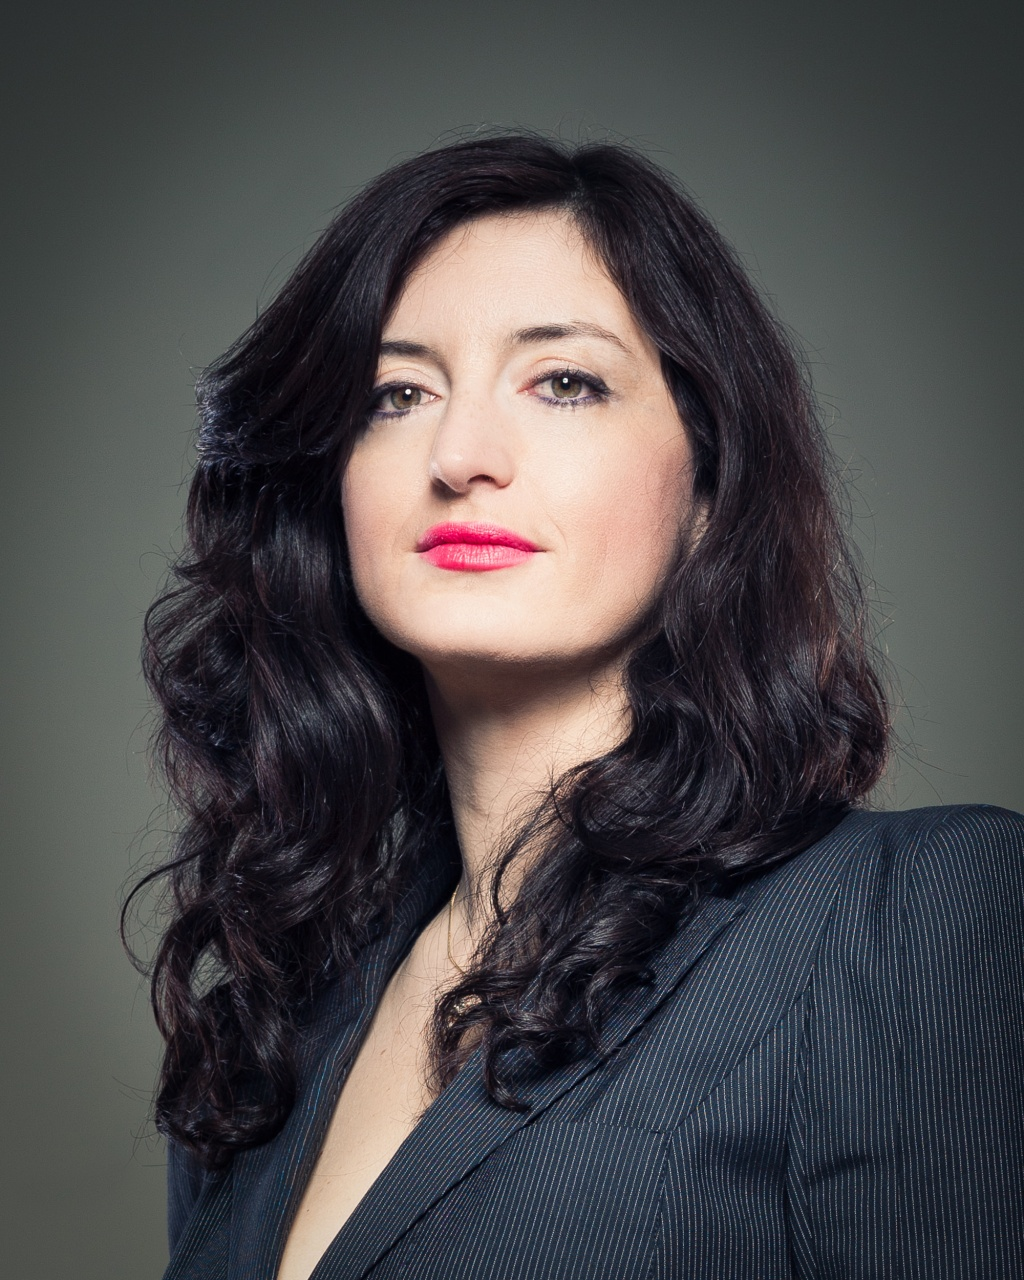 tatiana rizzante   ceo reply portrait